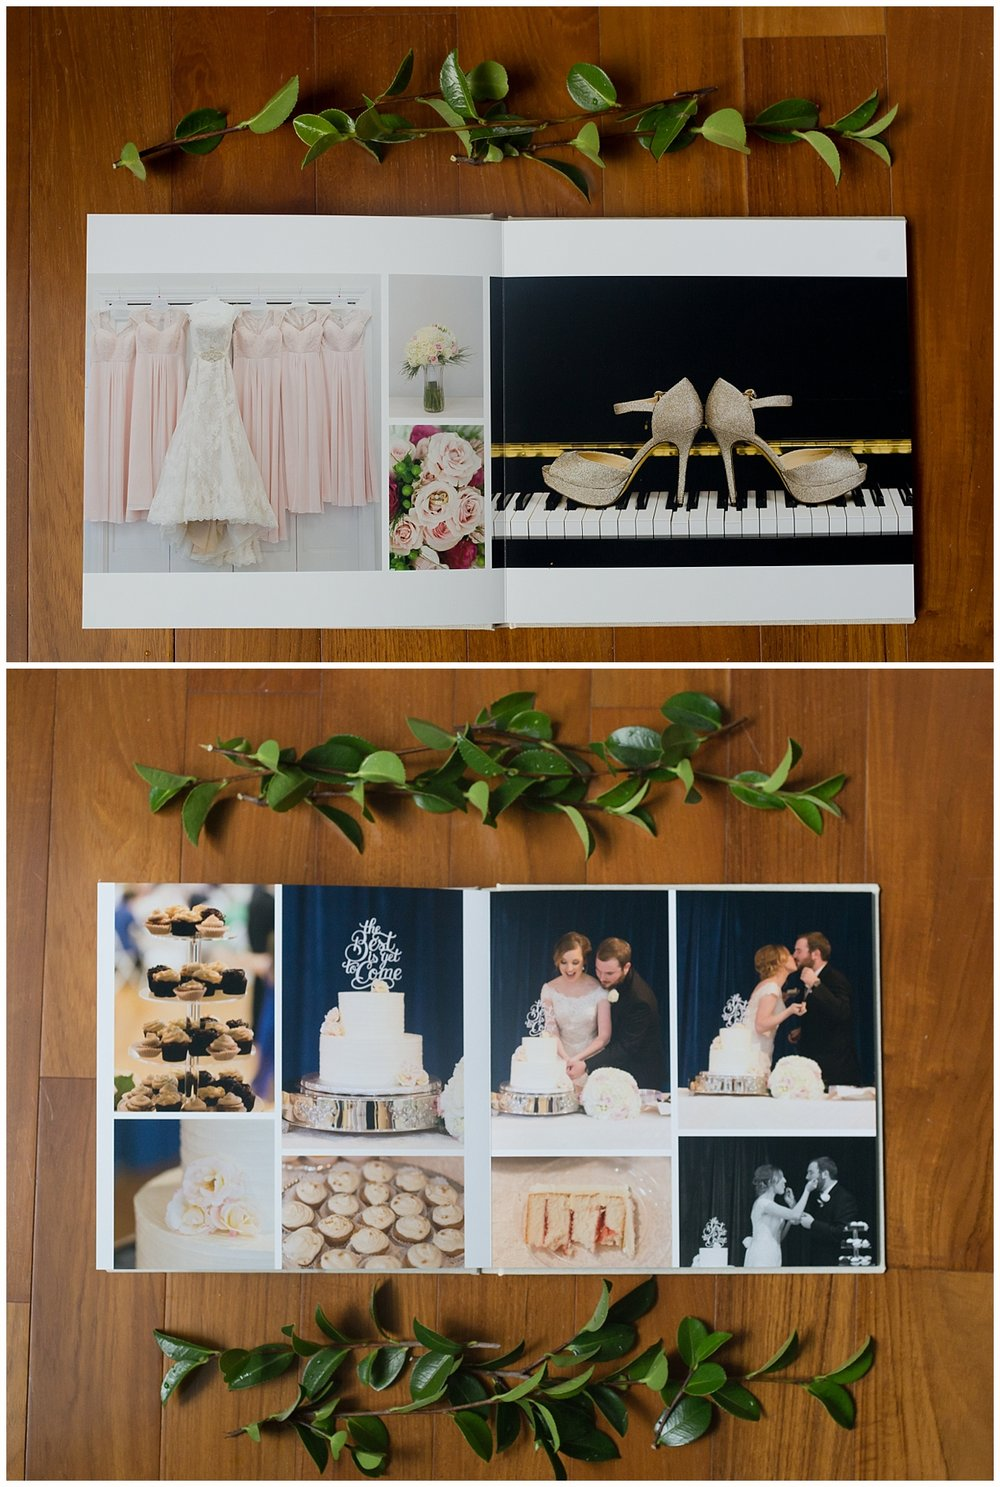 Ocean Springs, MS wedding photographer - details in layflat wedding album